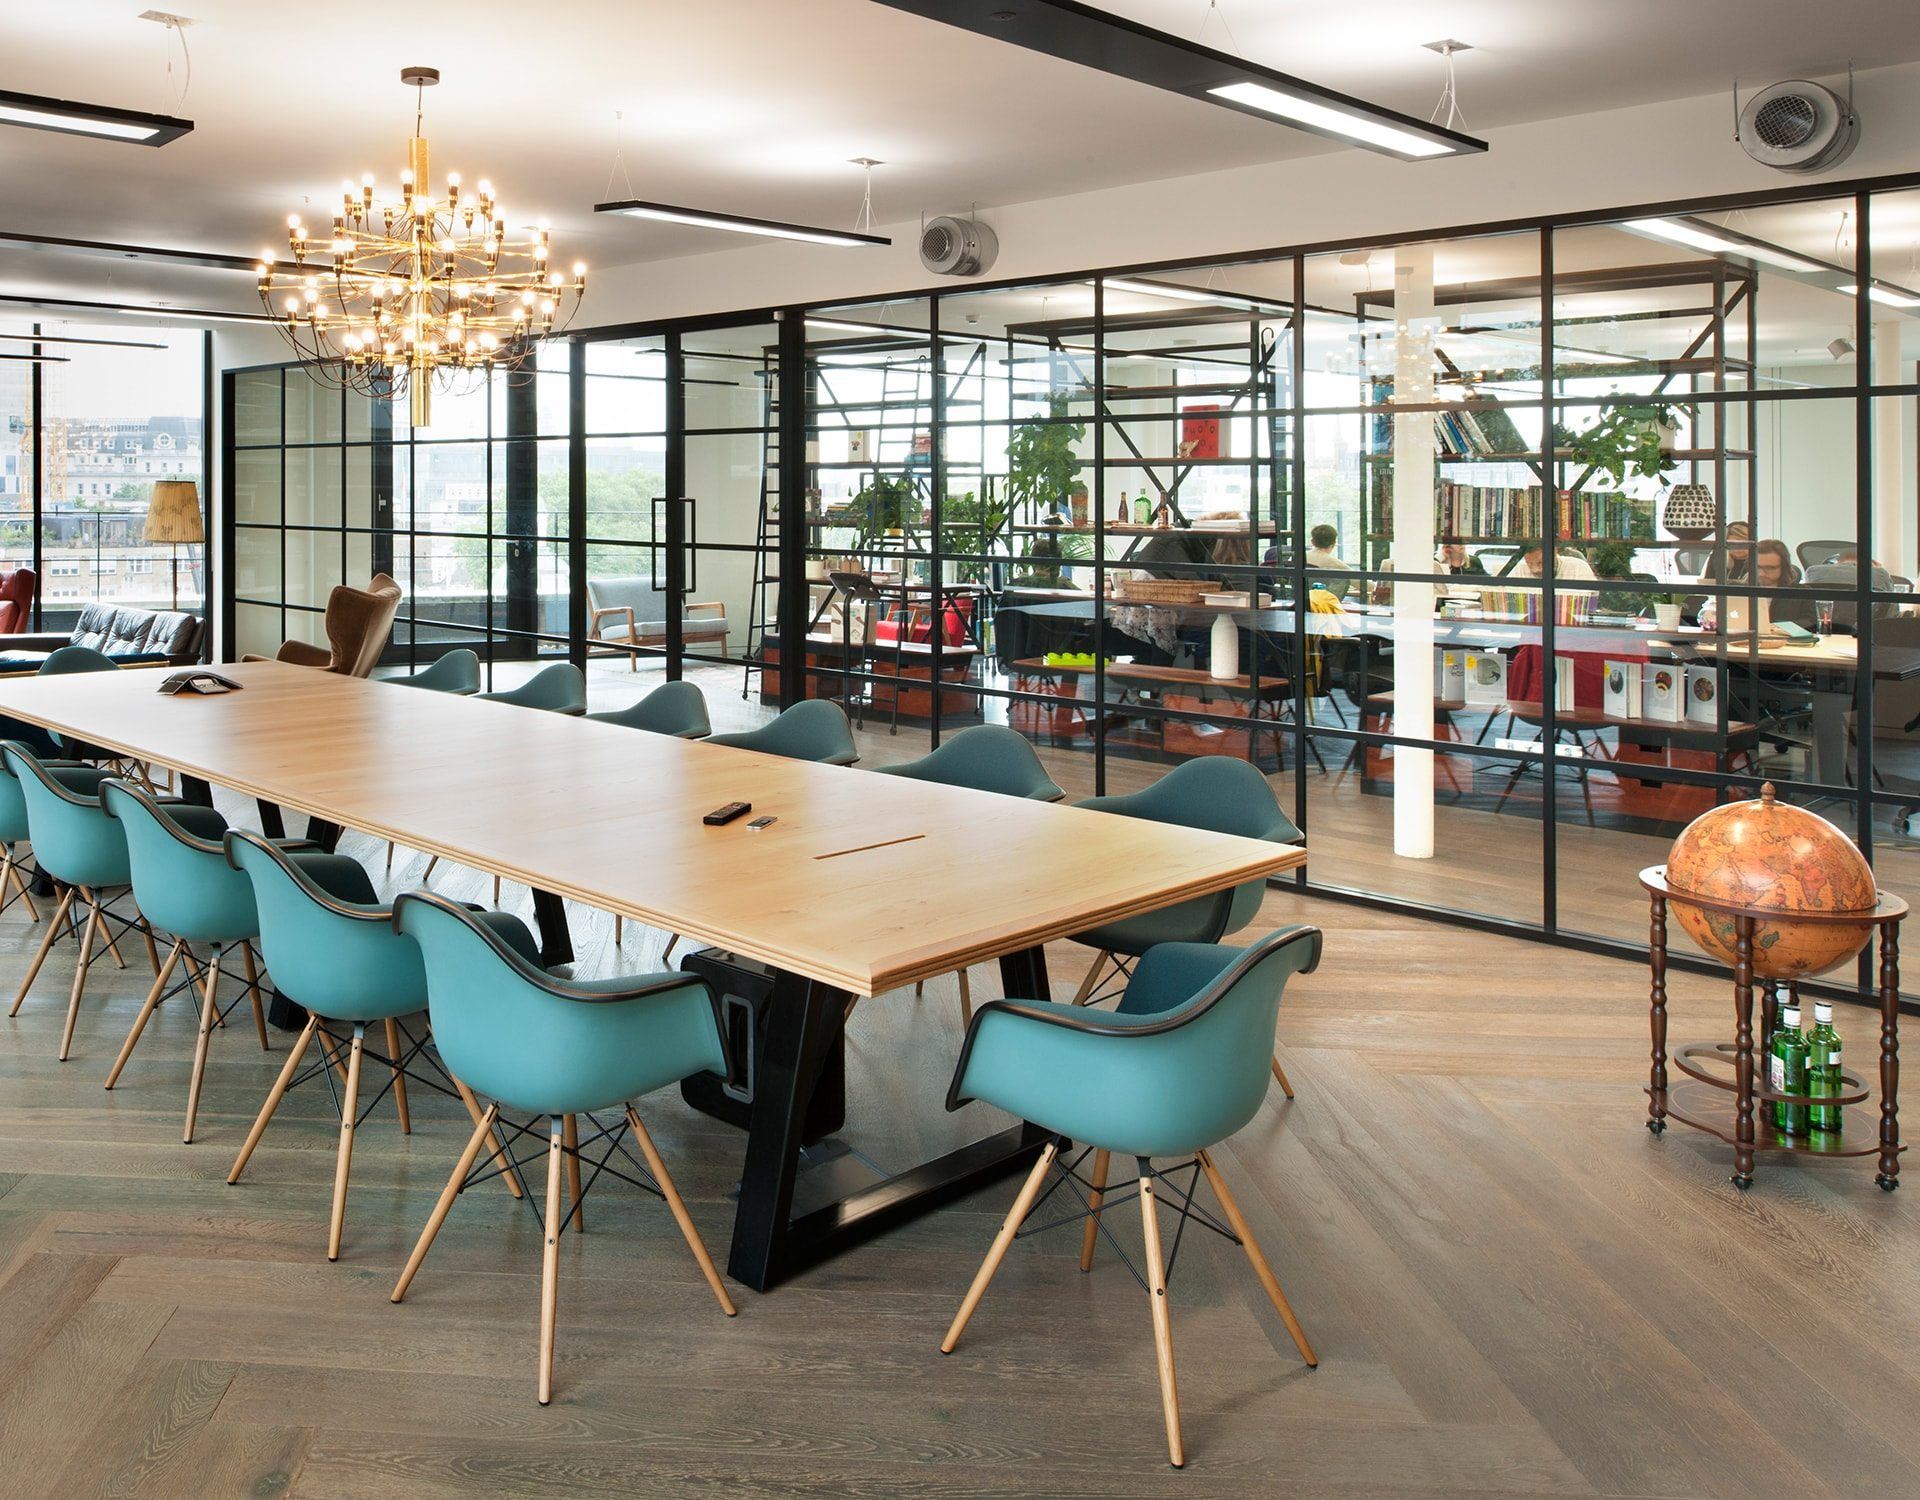 Industrial look | Crittall Glazing | Board room | Commercial |